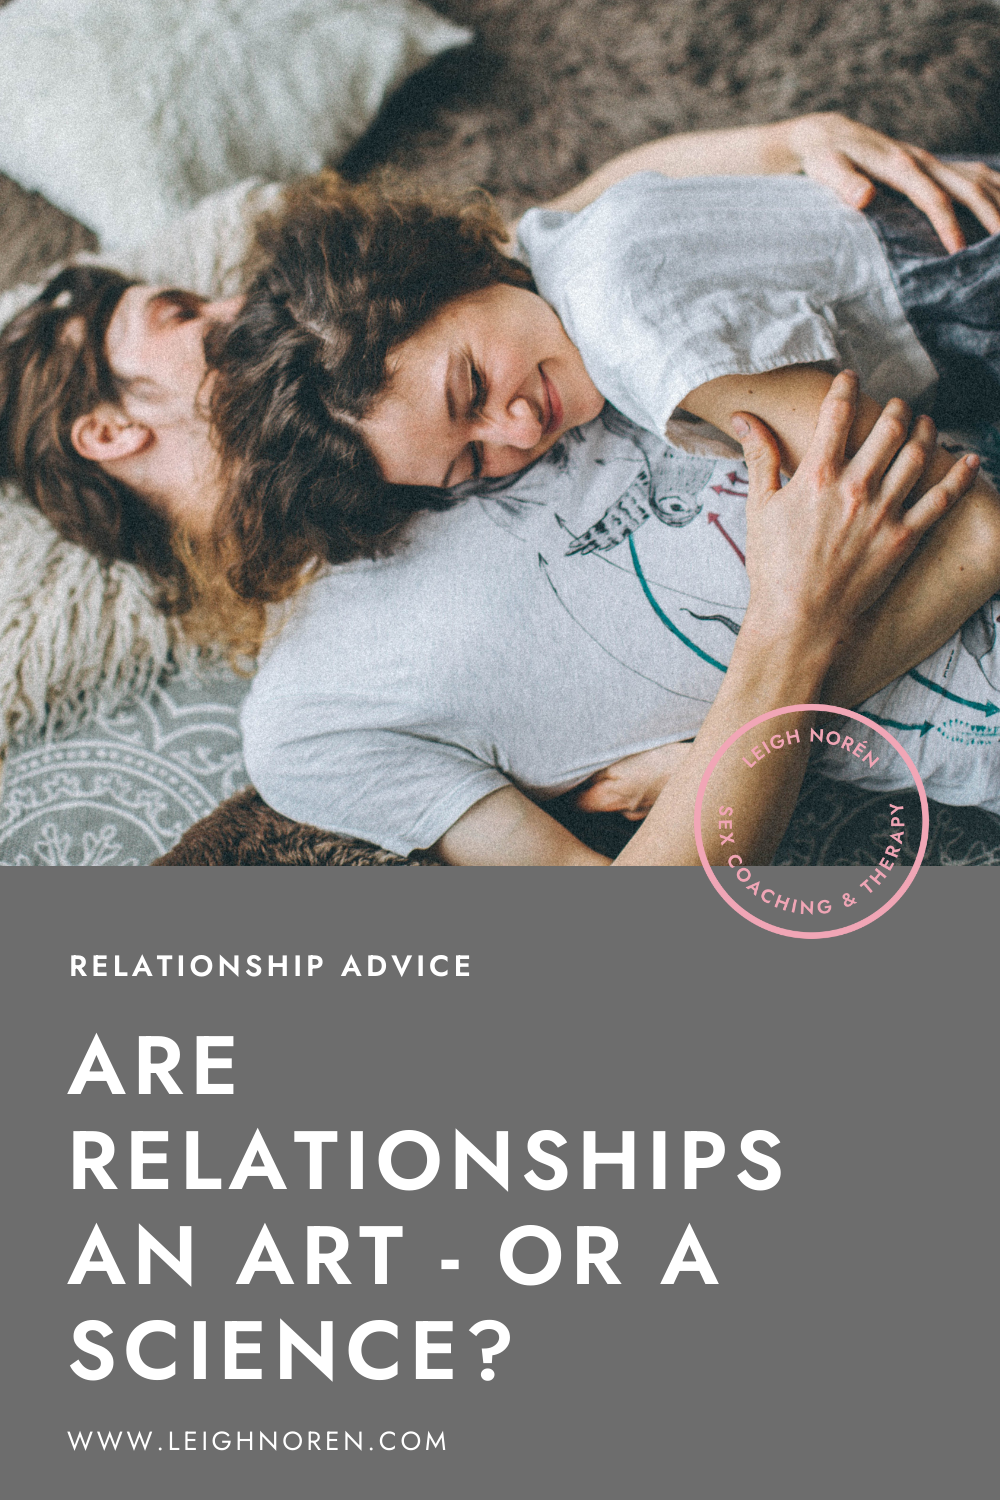 The One Thing You Must Know About Keeping Your Relationship Alive (If You Want To Stay Together)